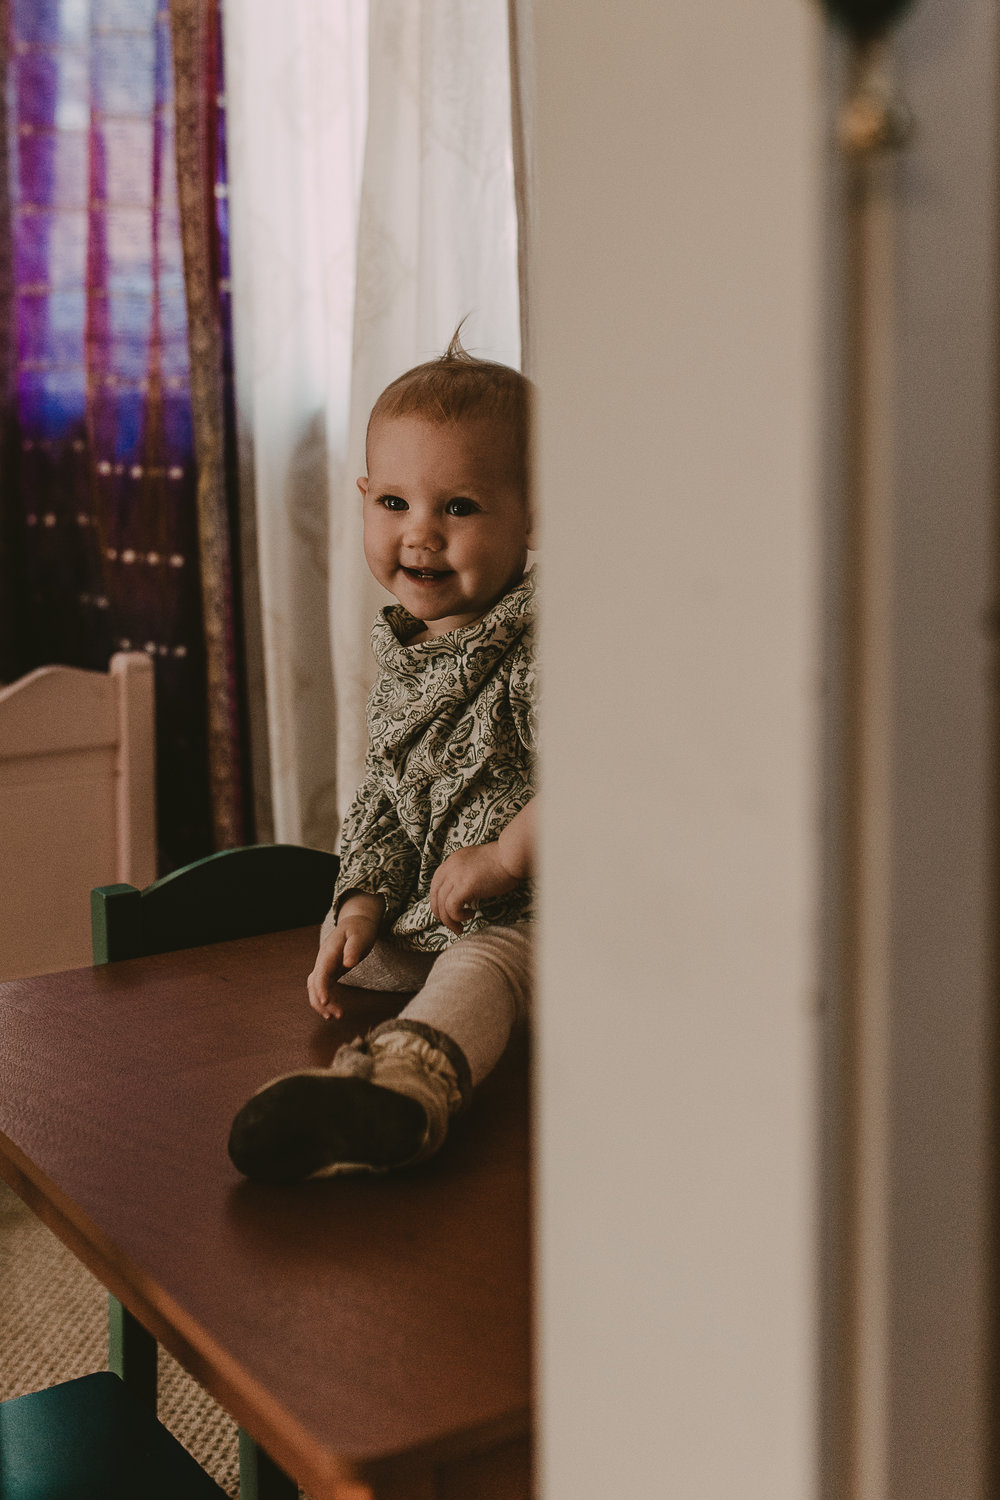 Toddler girl sitting on table peeking around corner giggling